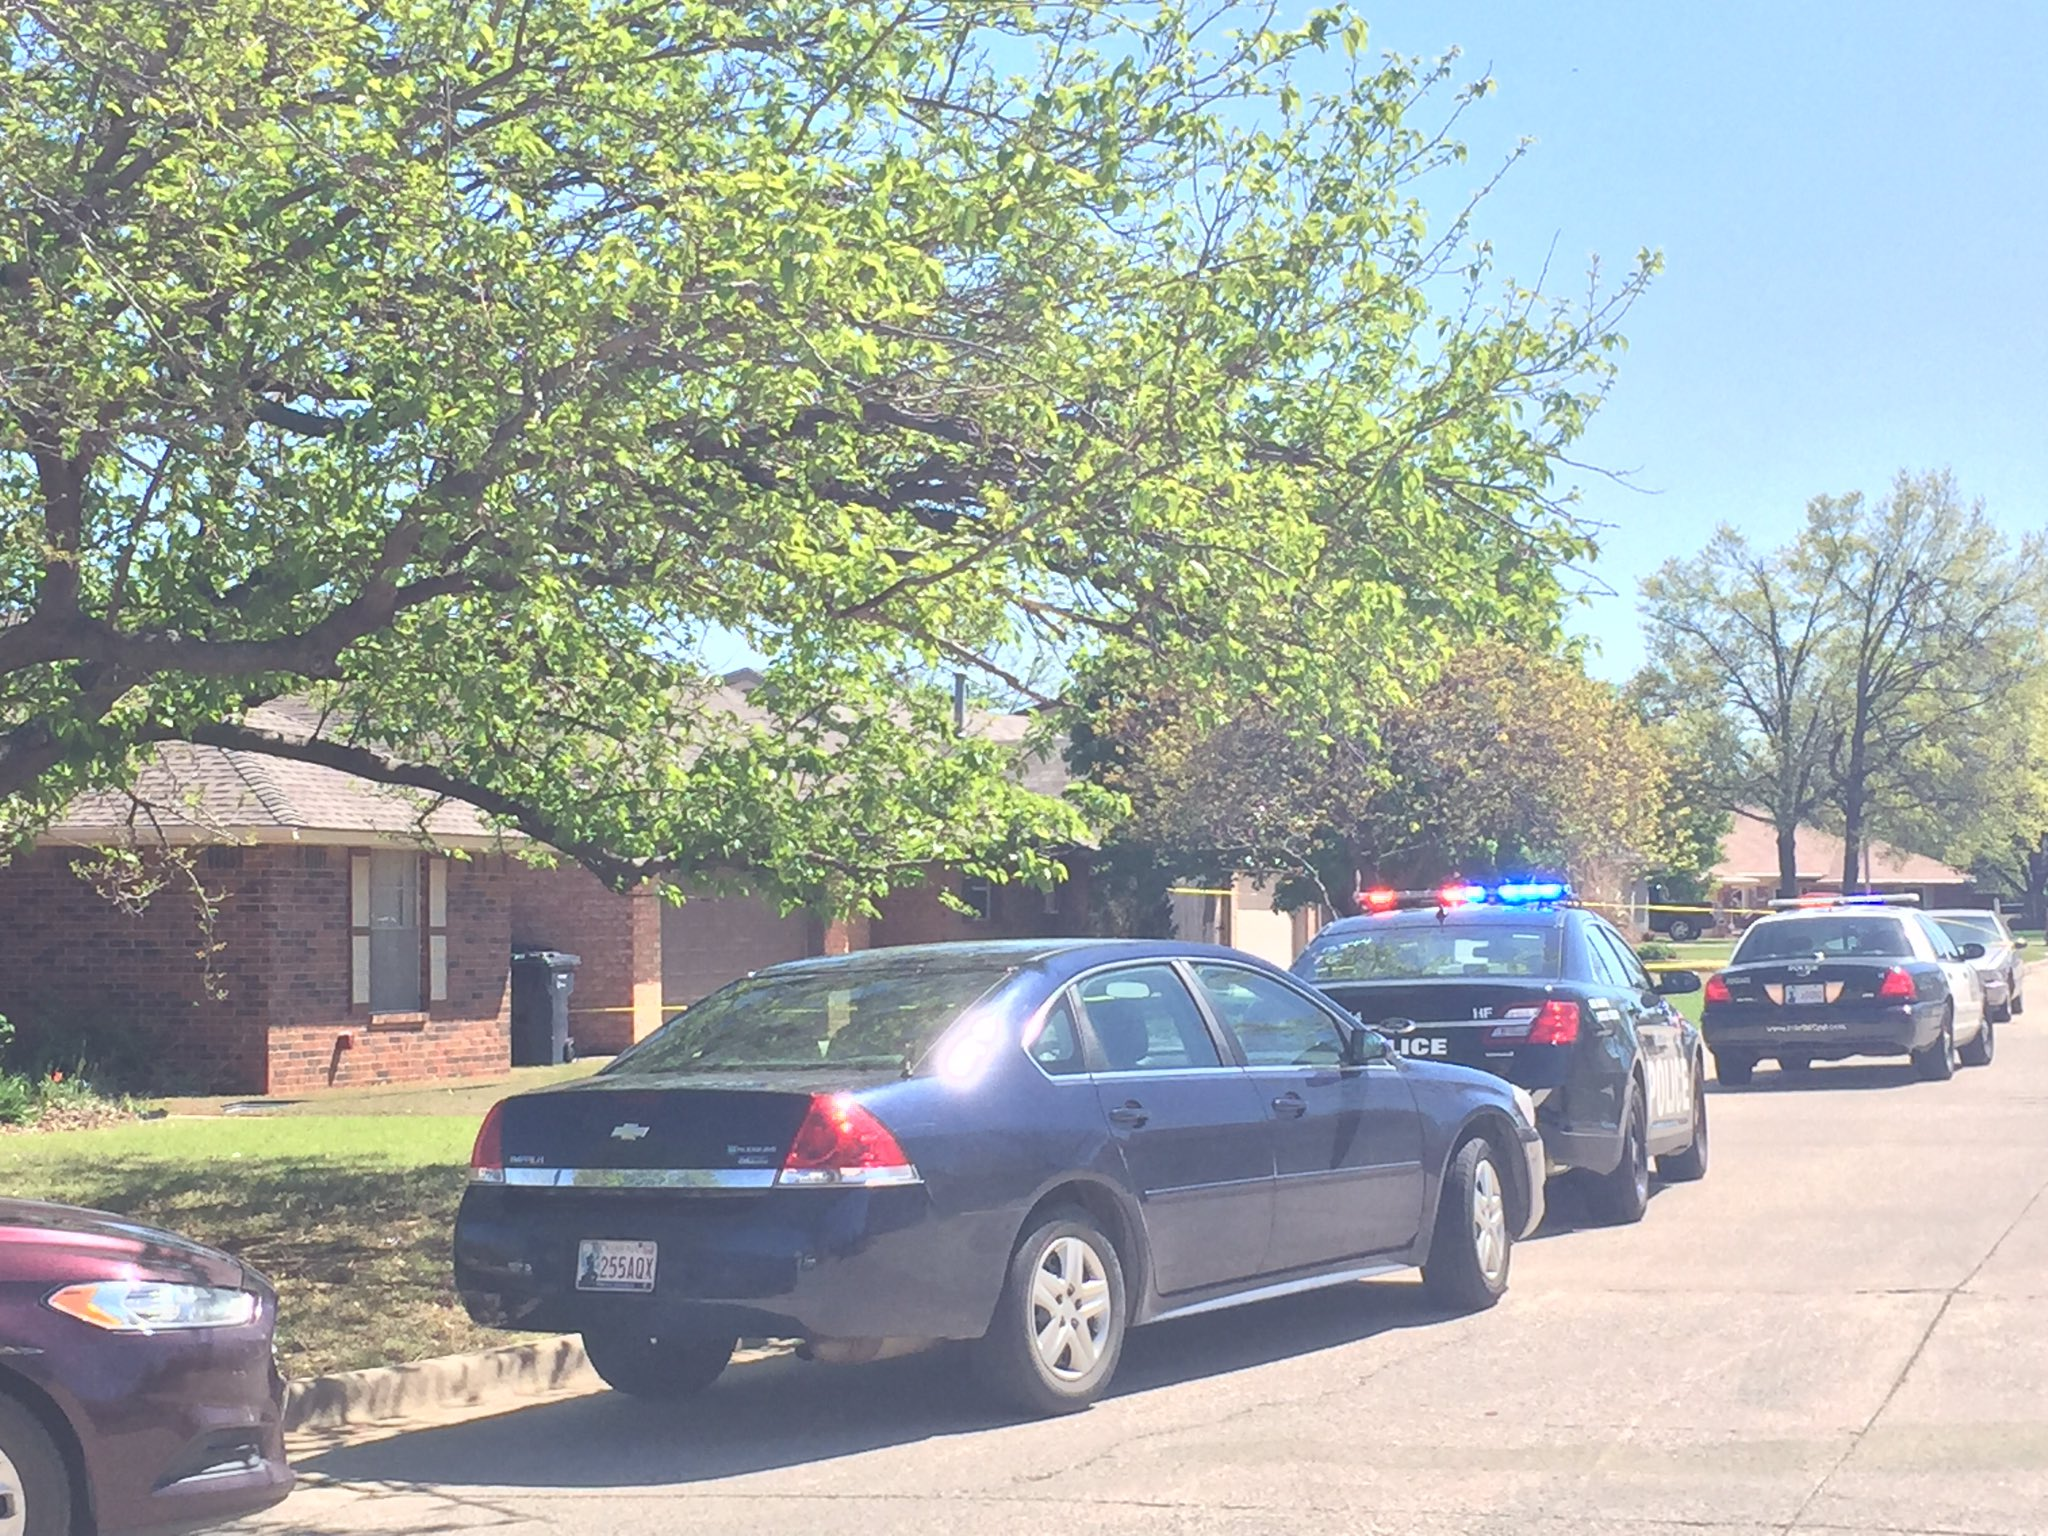 Police investigate the scene of a fatal dog attack April 6 in northwest Oklahoma City. (KOKH/Jordann Lucero)